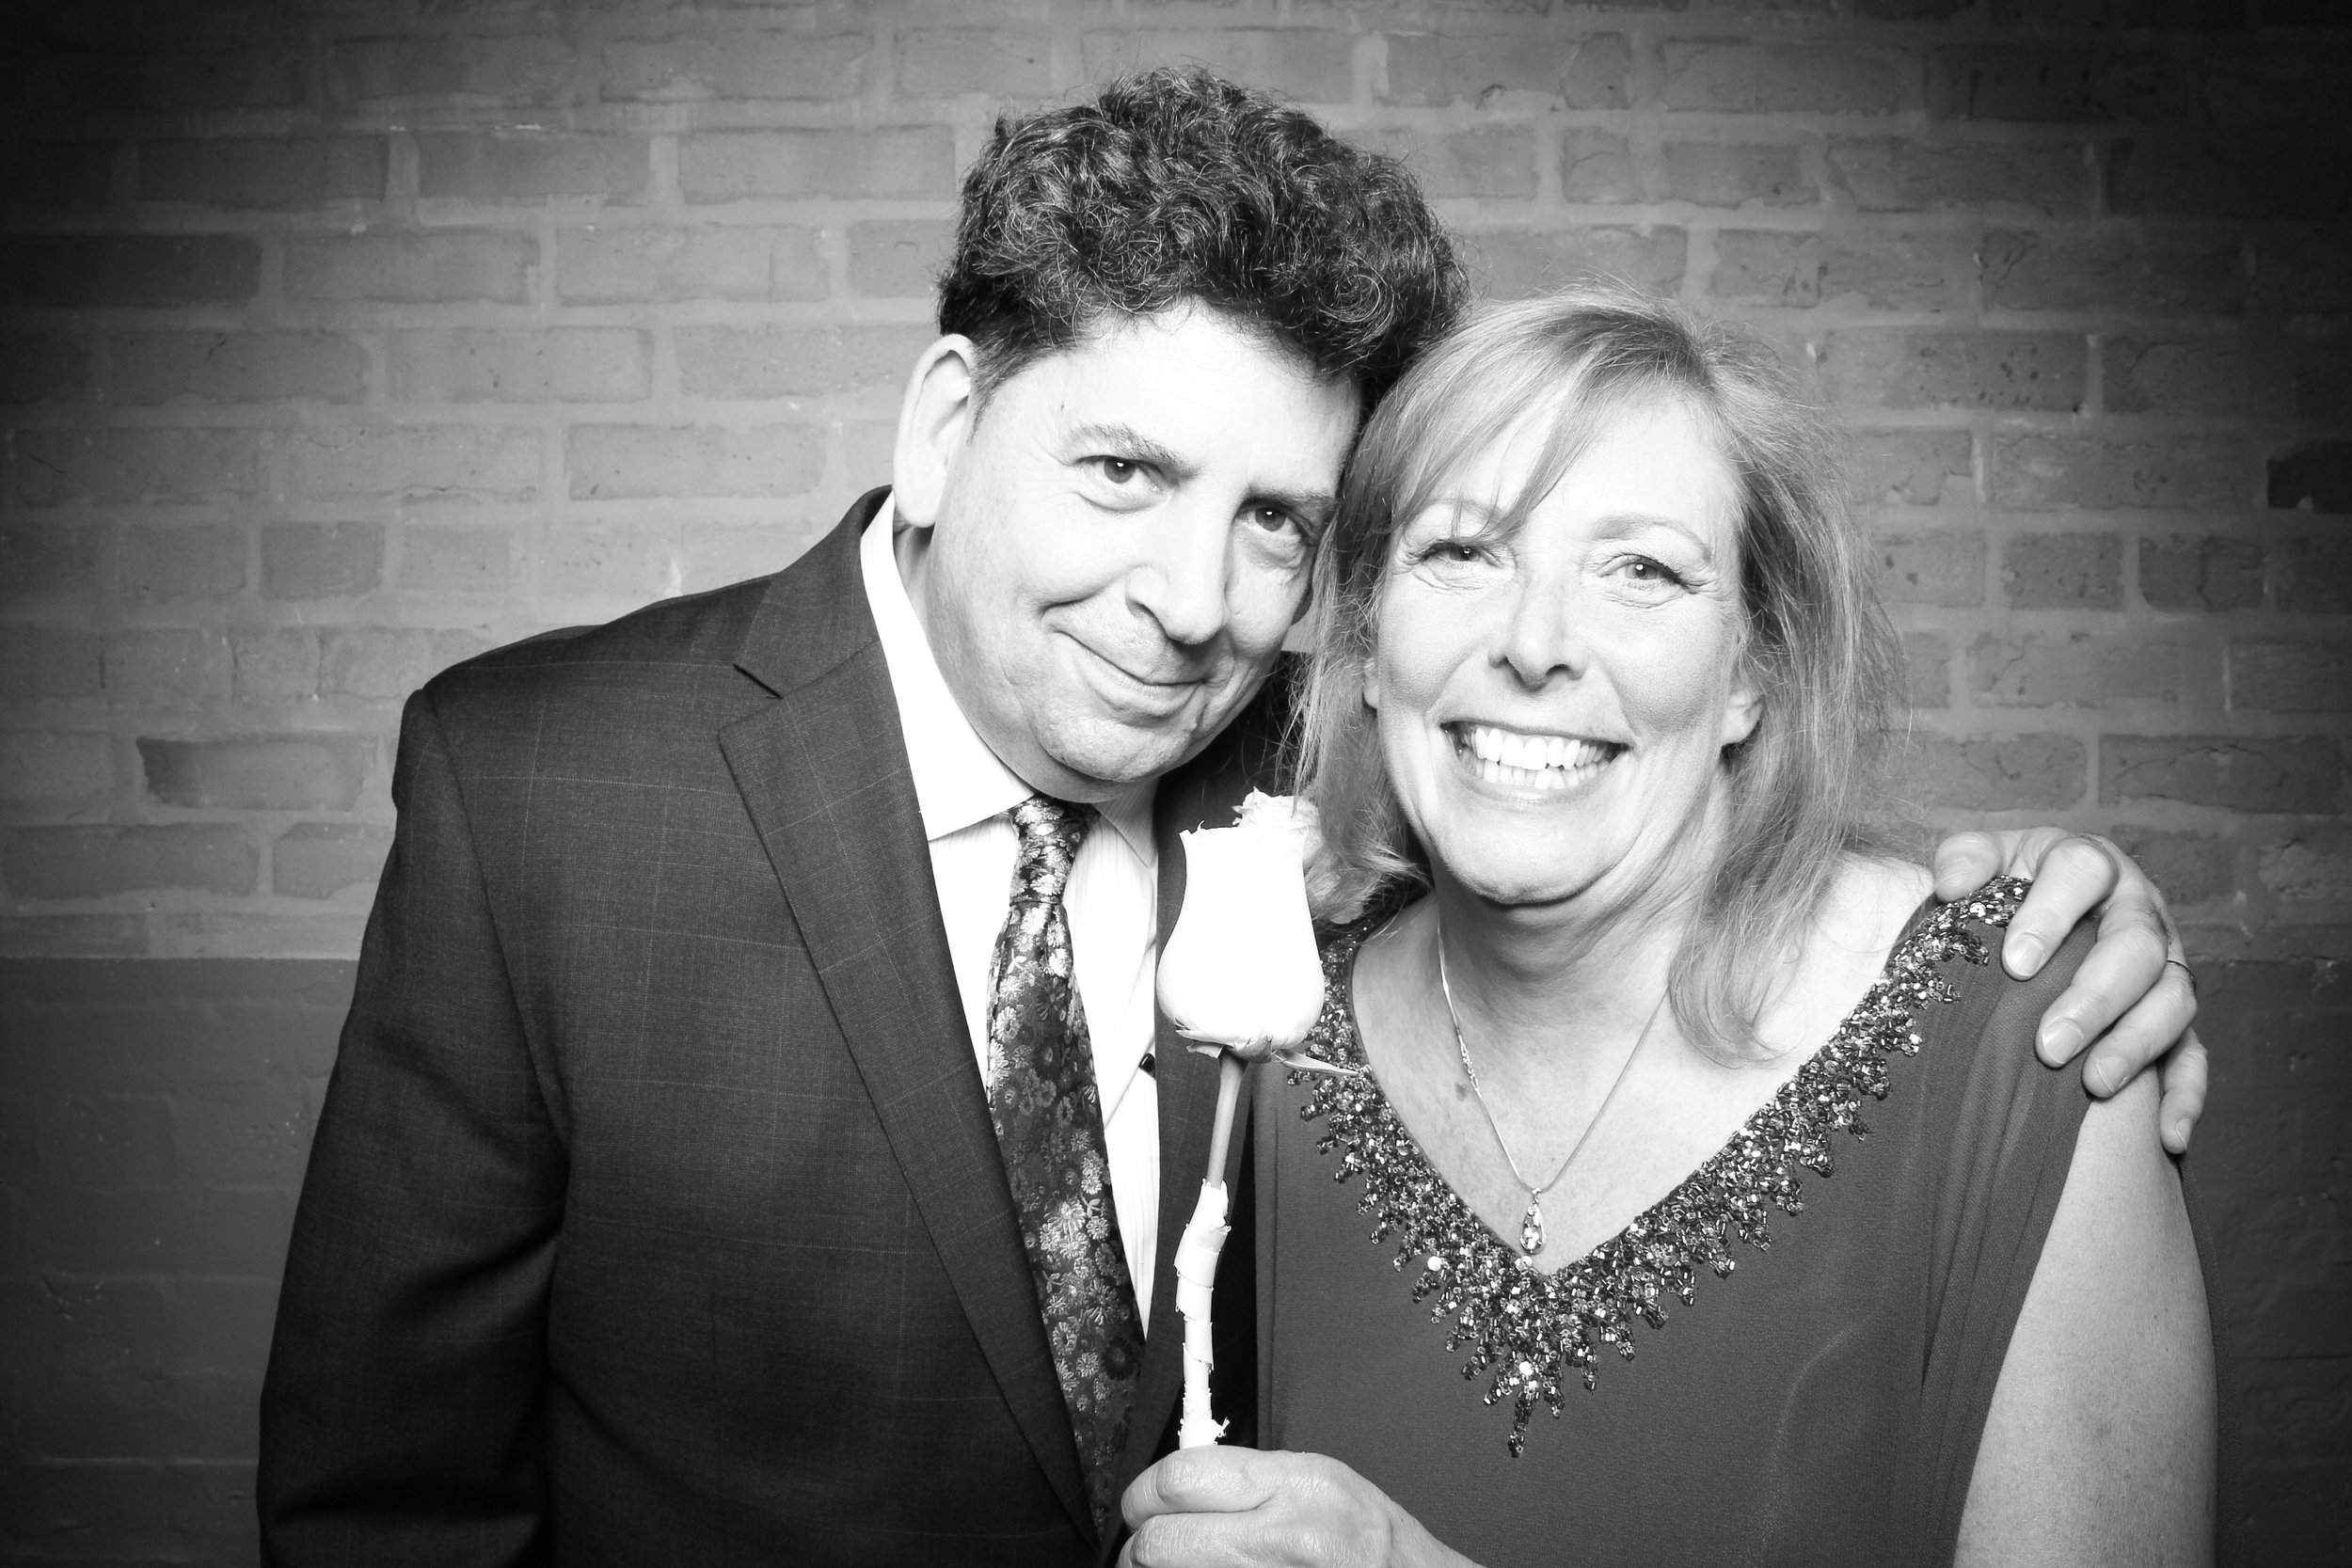 Chicago_Vintage_Wedding_Photobooth_Fairlie_05.jpg